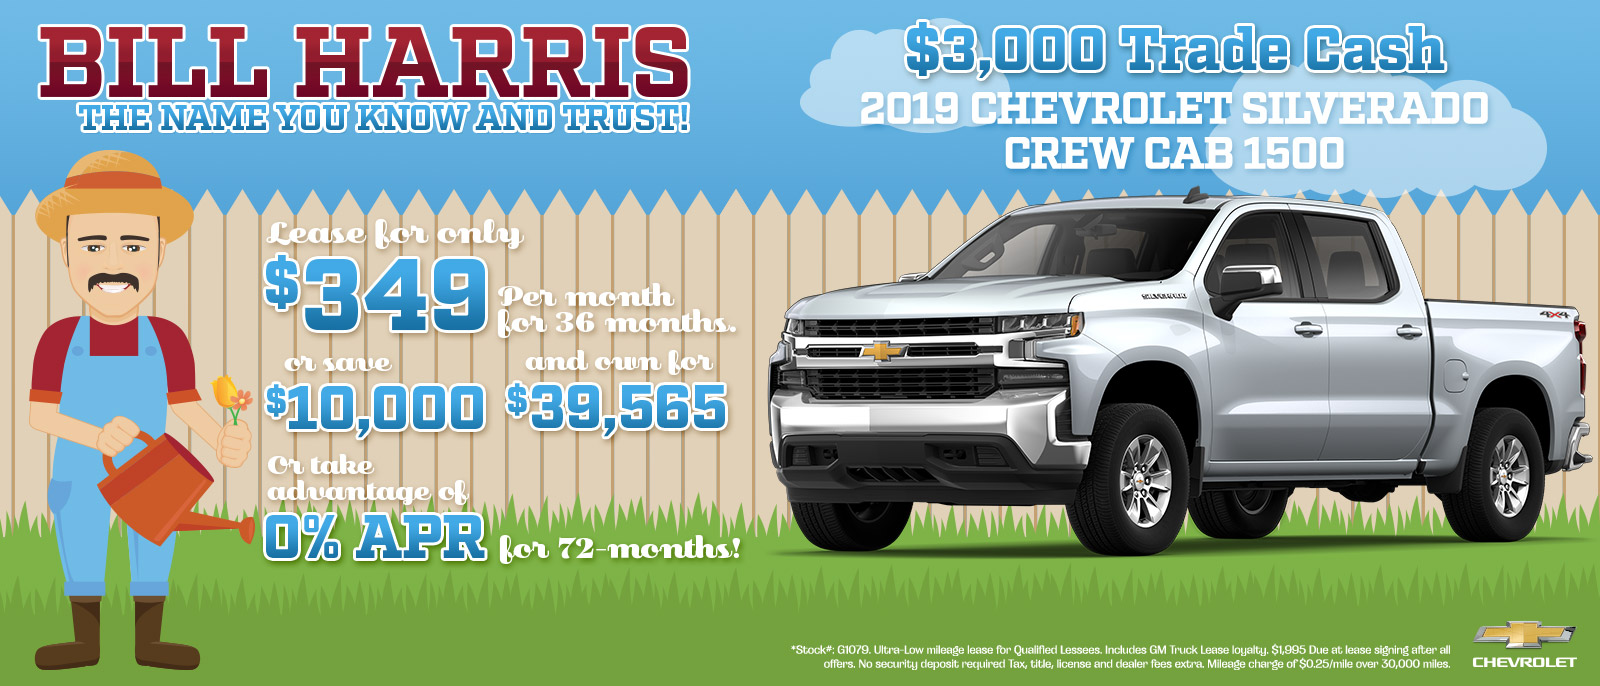 2019 Chevy Silverado 1500 Savings